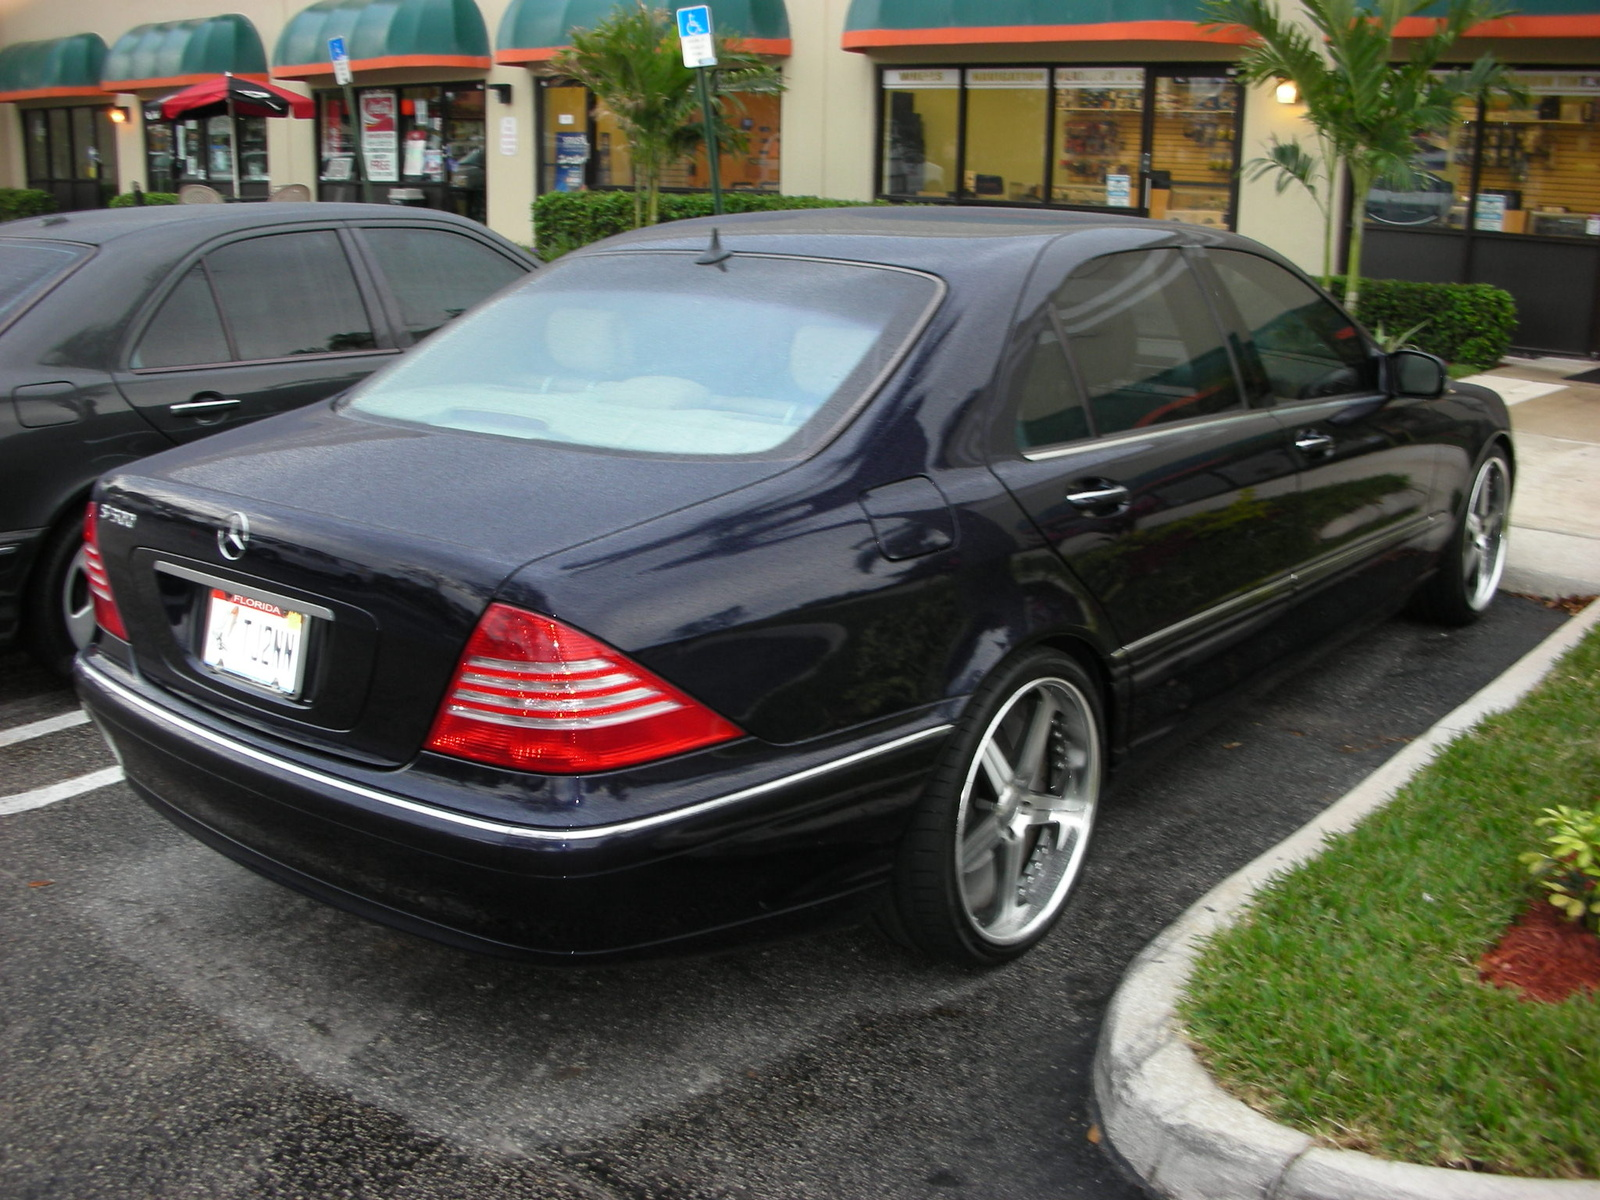 Mercedes benz s500 2003 review amazing pictures and for Mercedes benz s500 2003